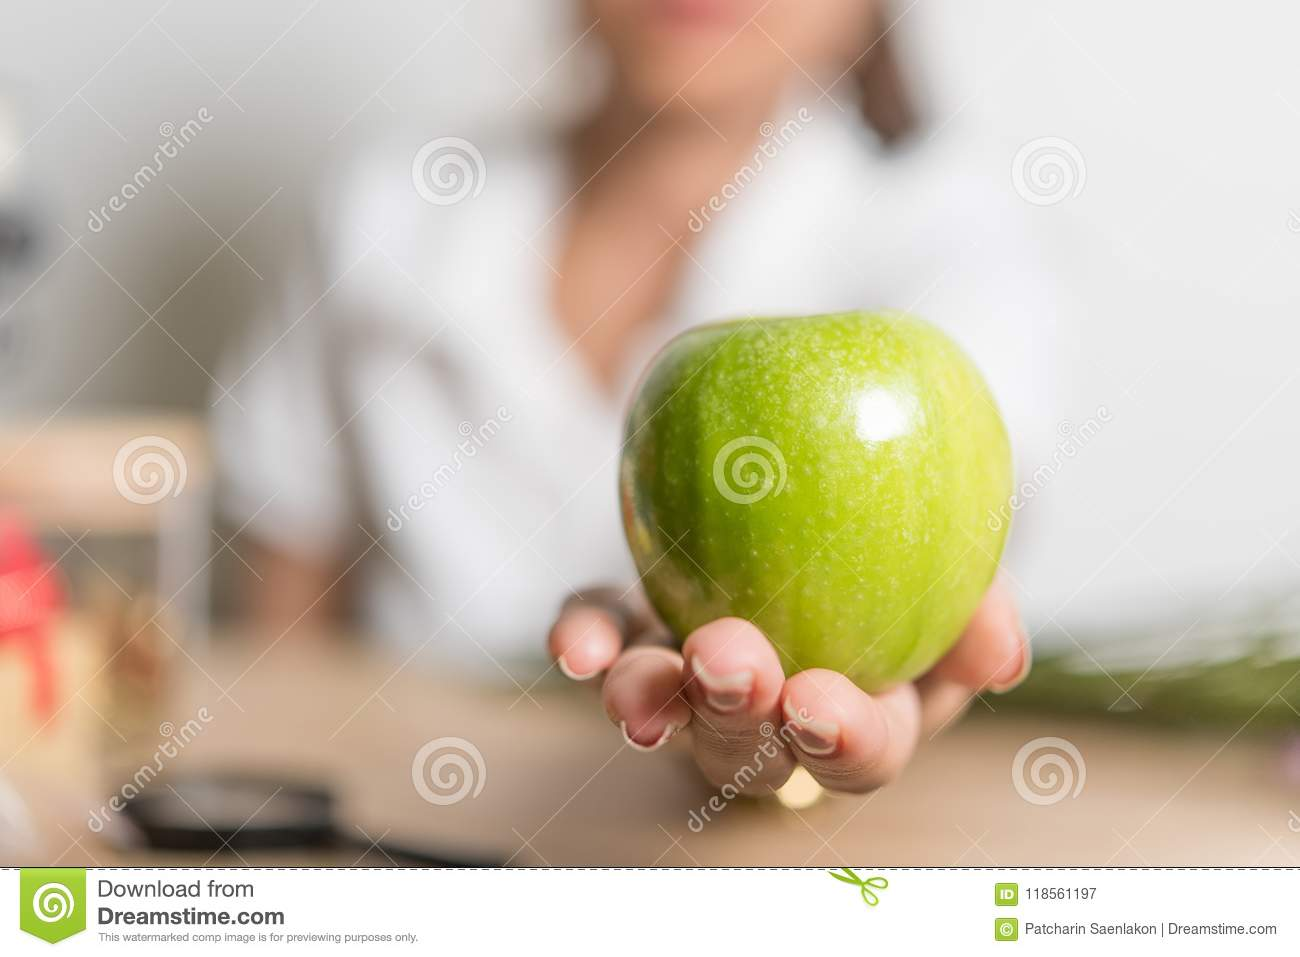 Green apple fruit green apple Food and Fruit Concepts